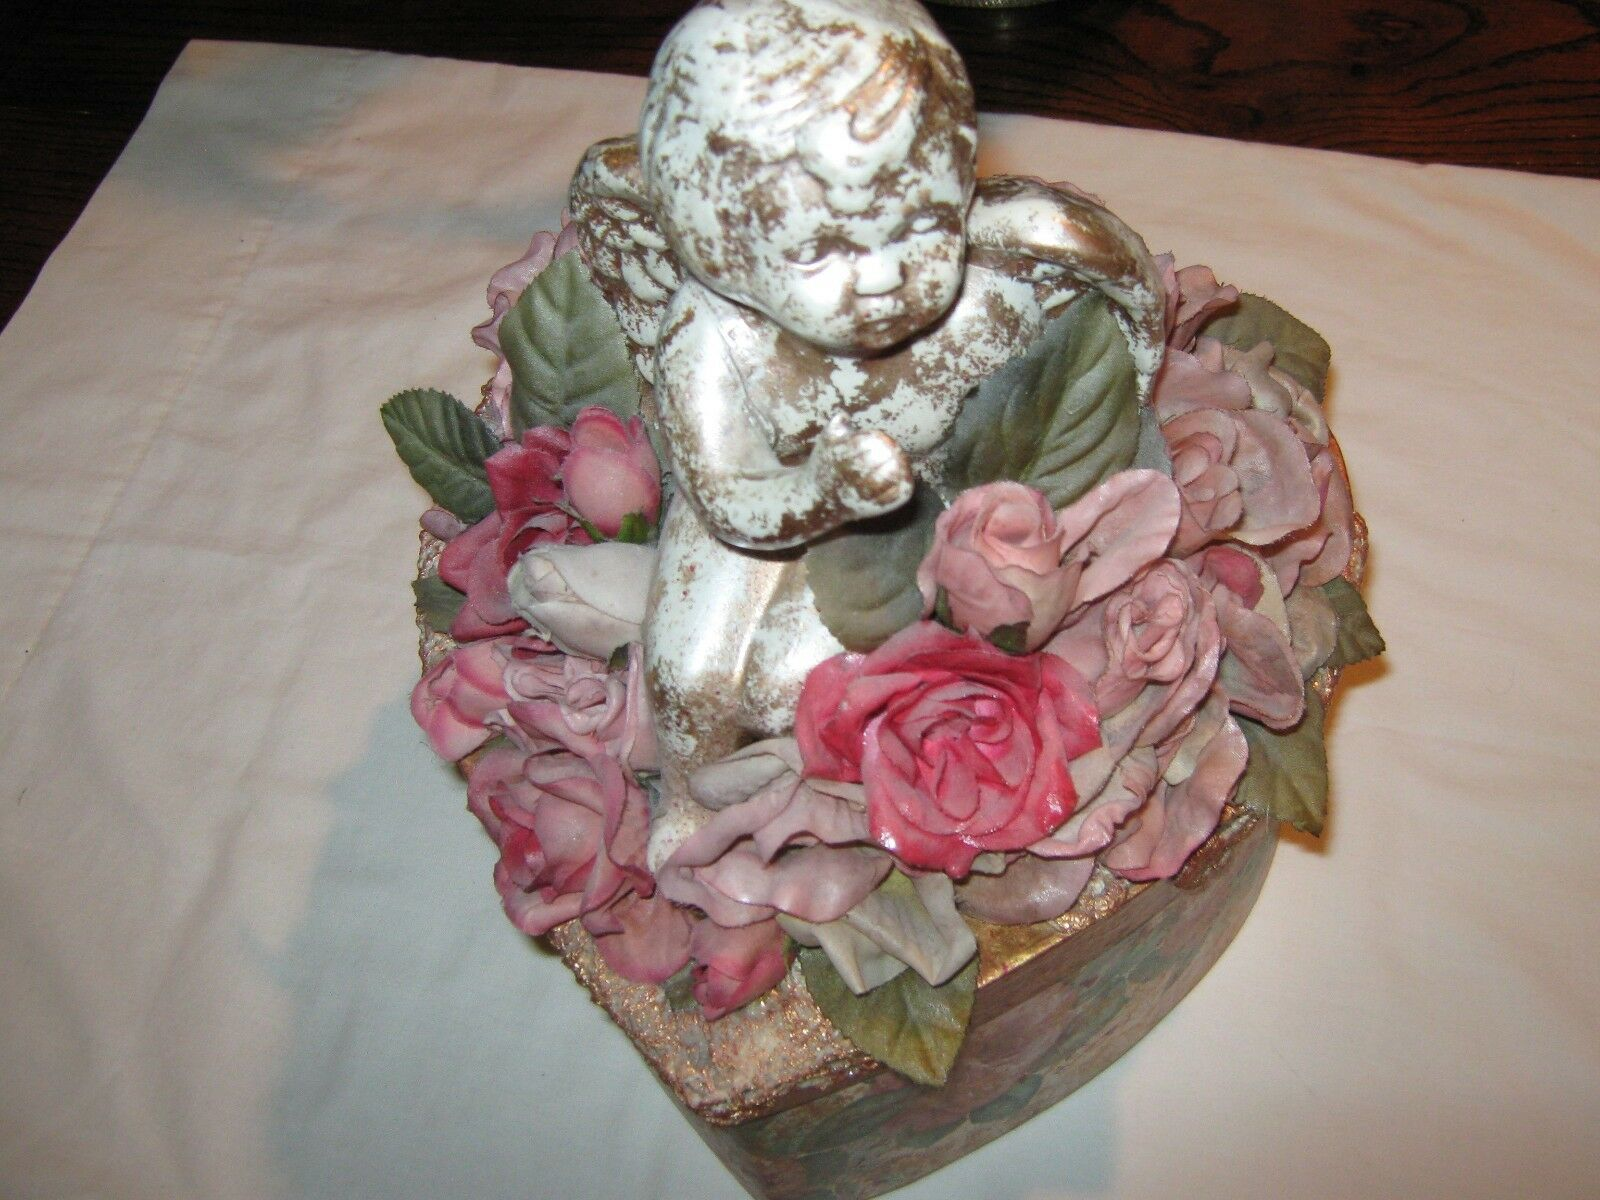 DECORATIVE HEART BOX WITH ARTIFICIAL FLOWERS AND ANGLE